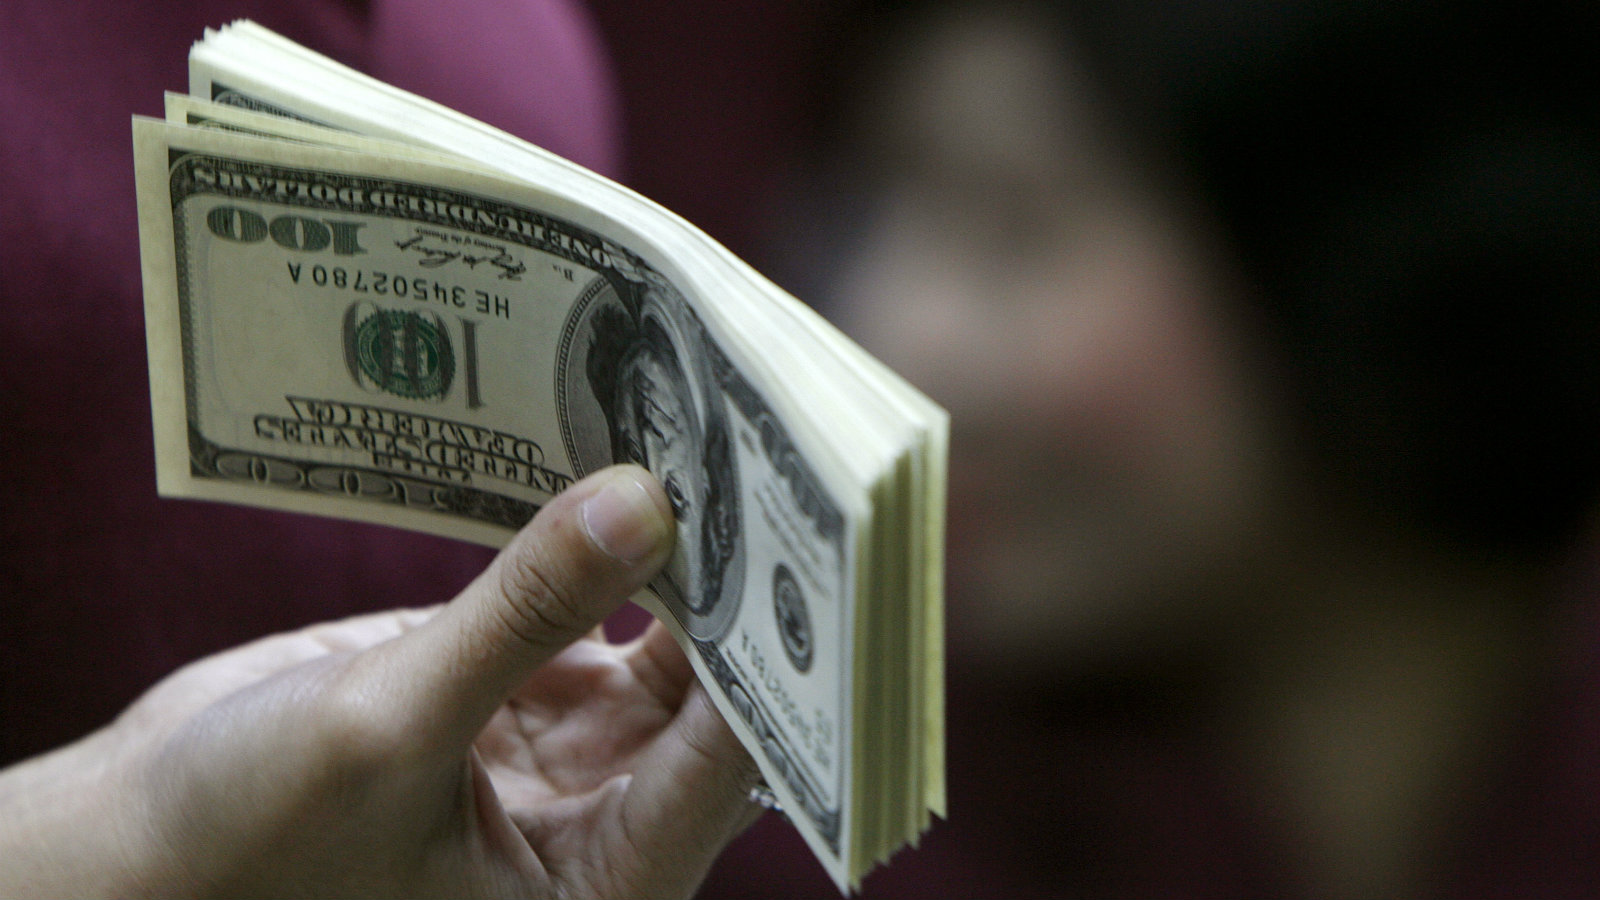 An employee working as a money changer prepares U.S. dollar currency for a customer in Jakarta October 28, 2008. The Indonesian rupiah tumbled in offshore forward markets as investors positioned themselves for further weakness in the high-yielding currency.